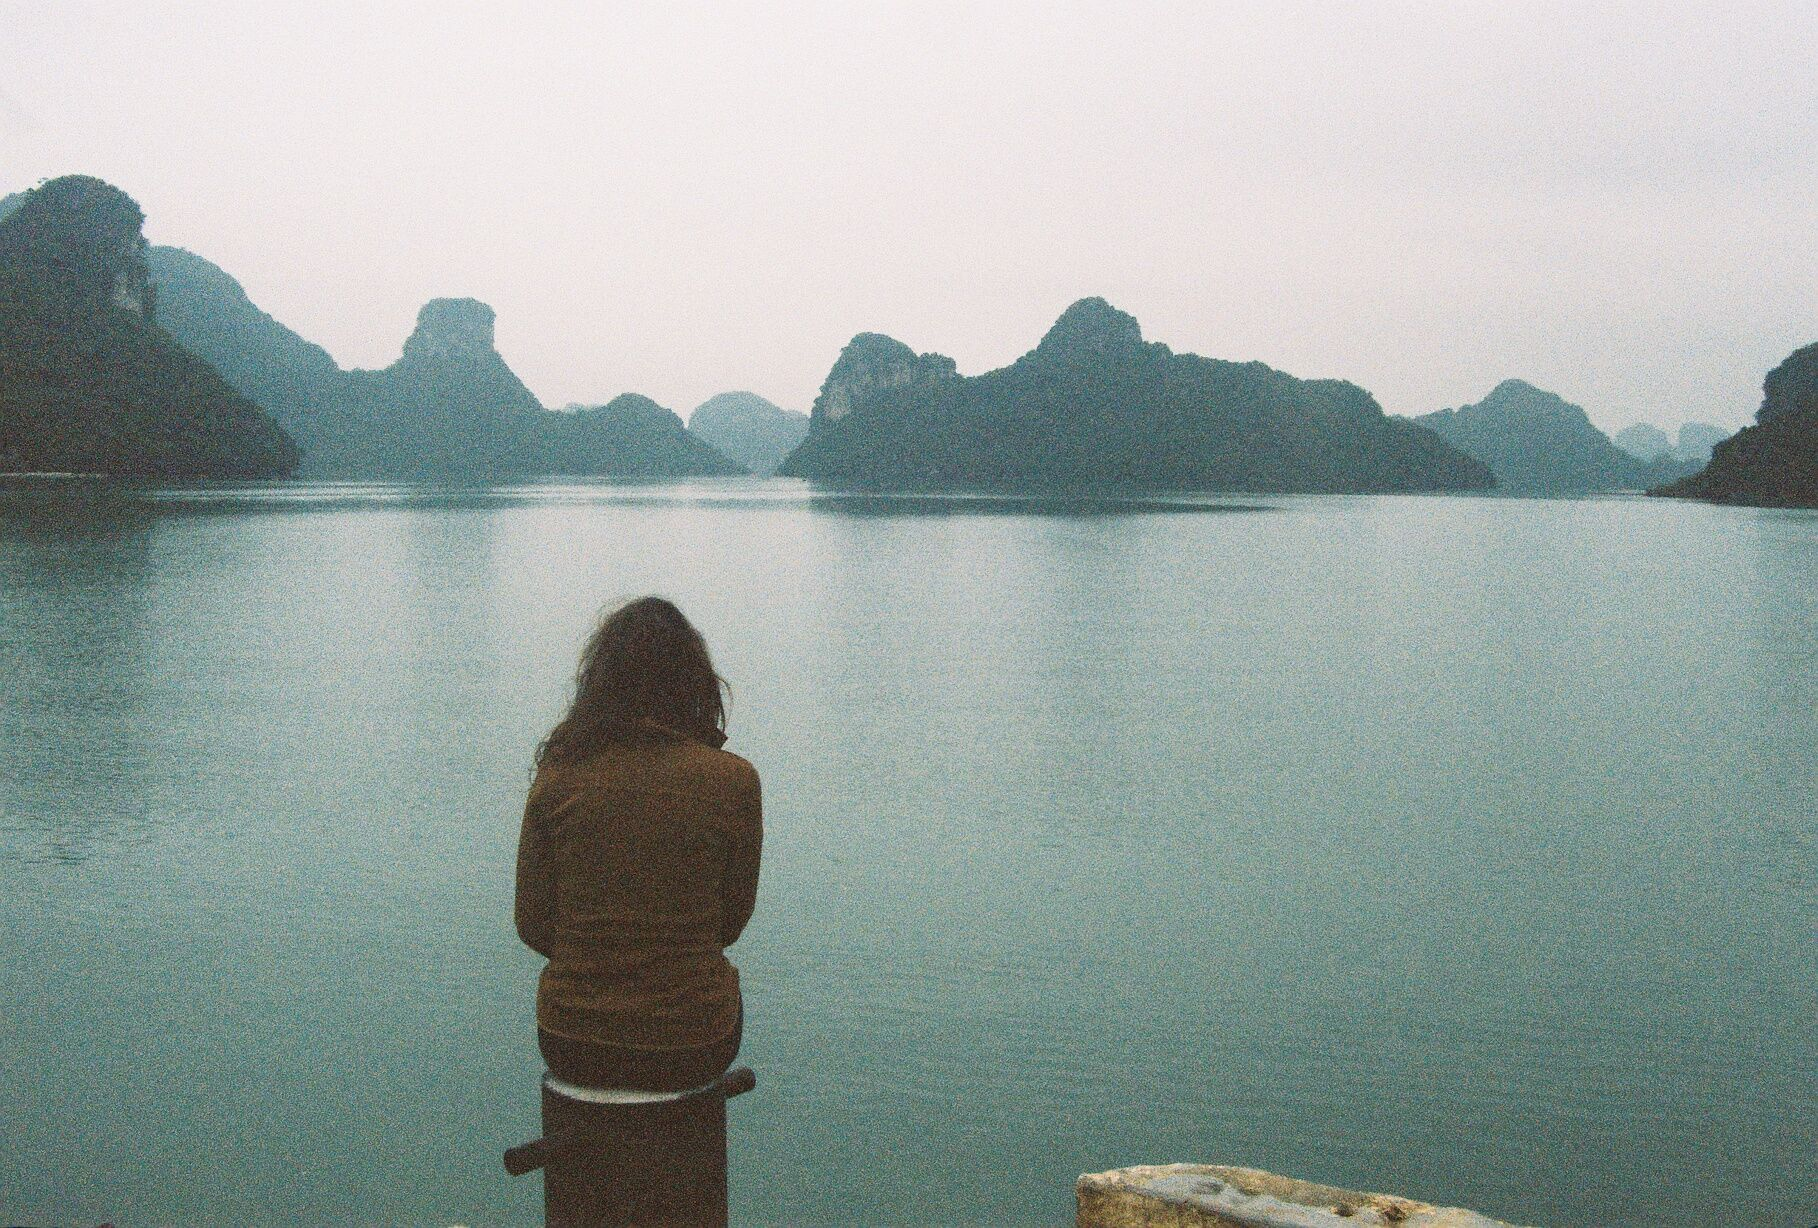 North side of Cat Ba